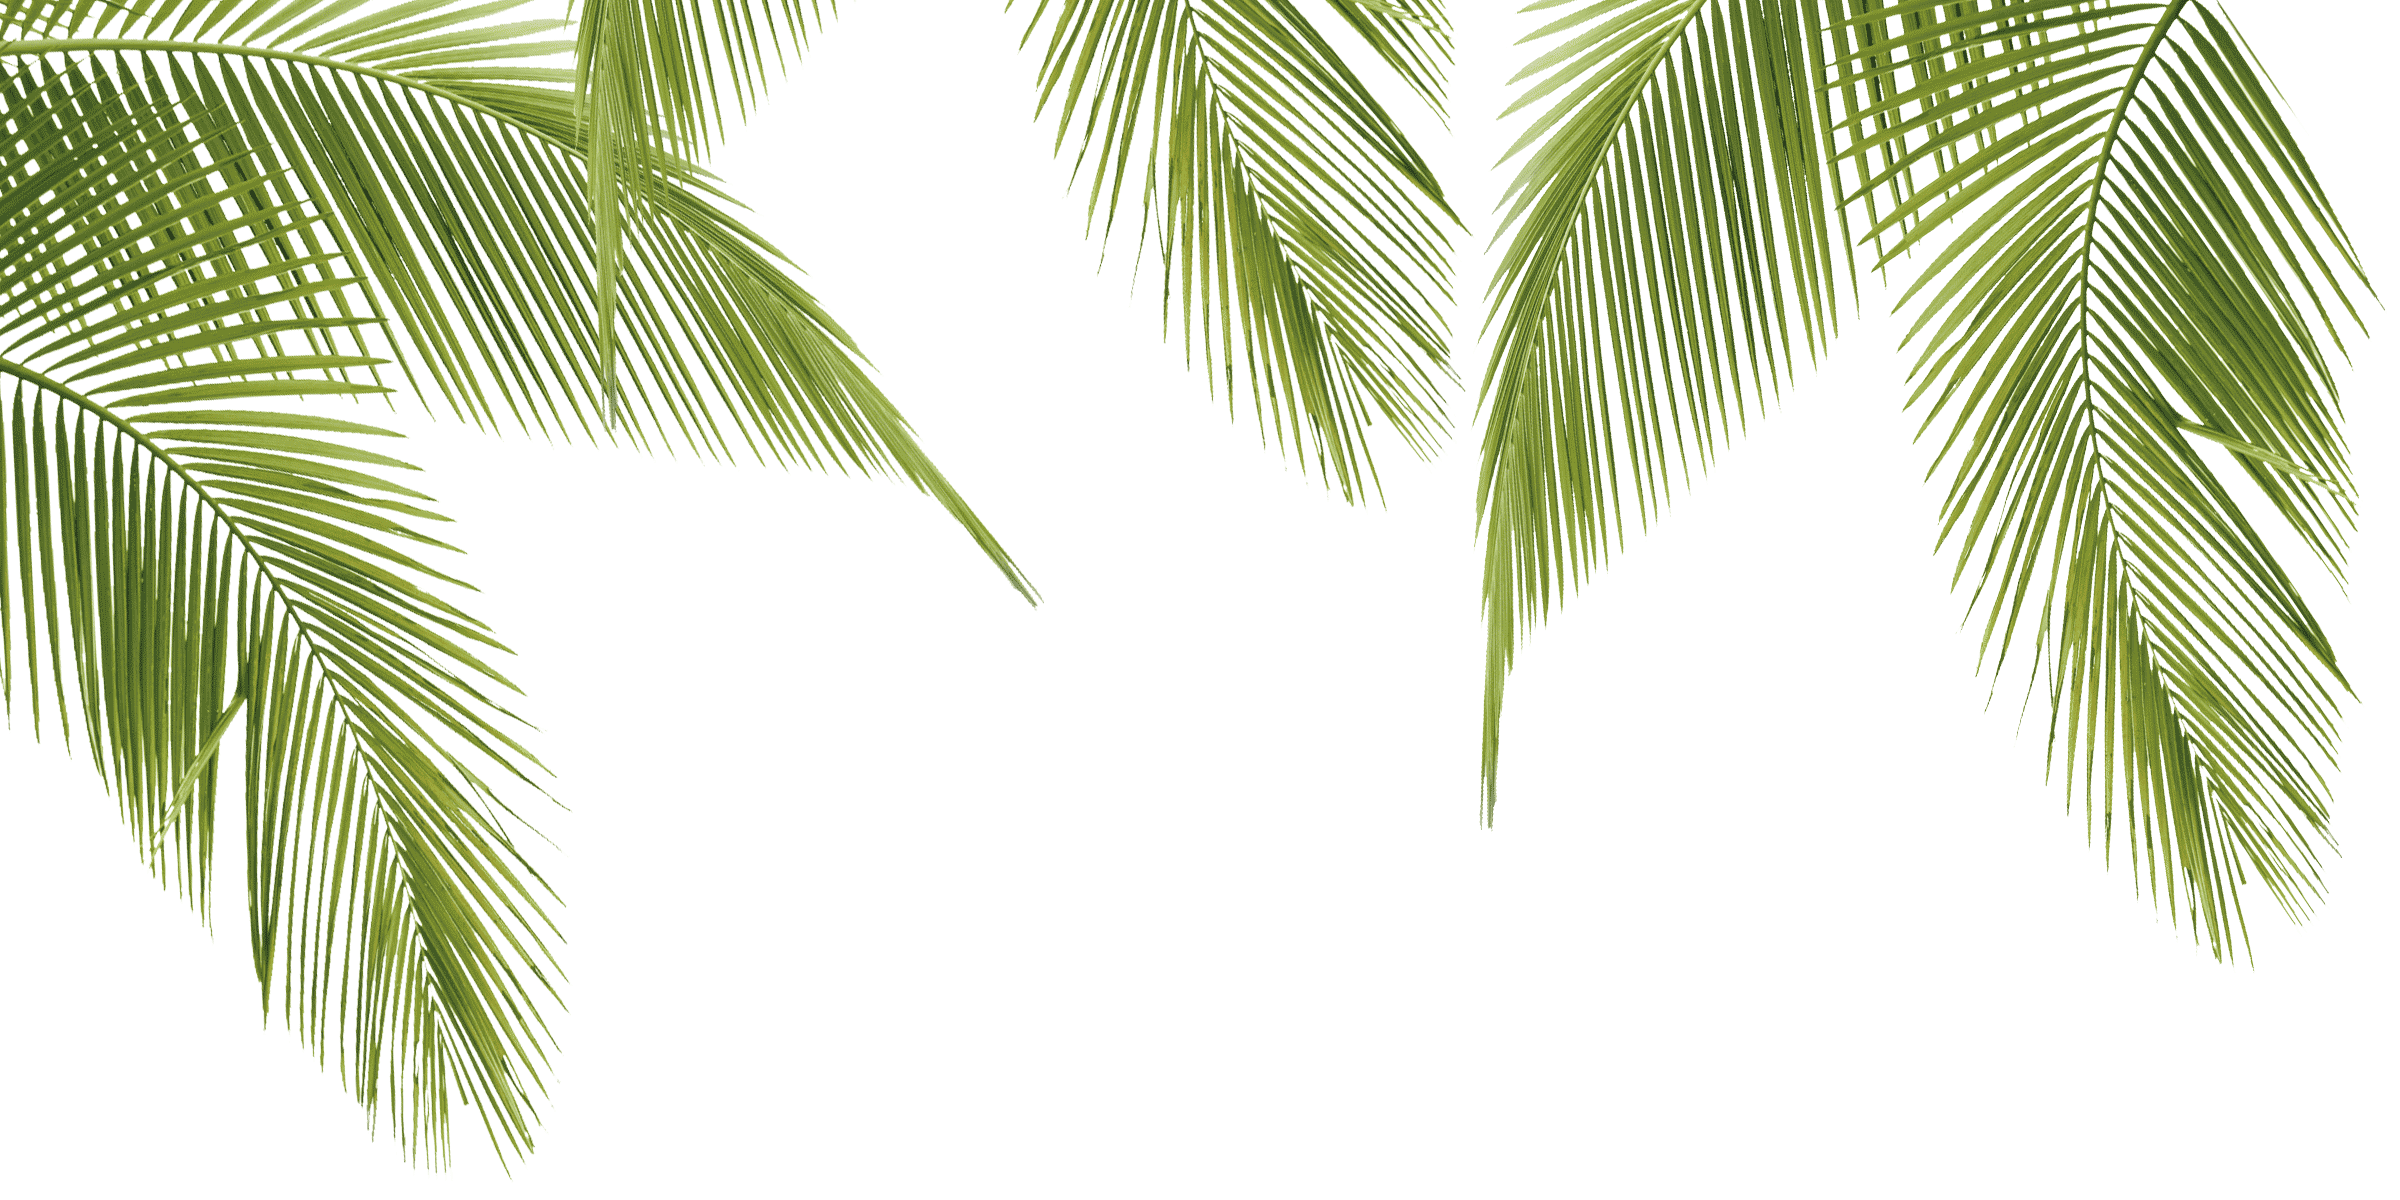 Png palm. Leaf image related wallpapers